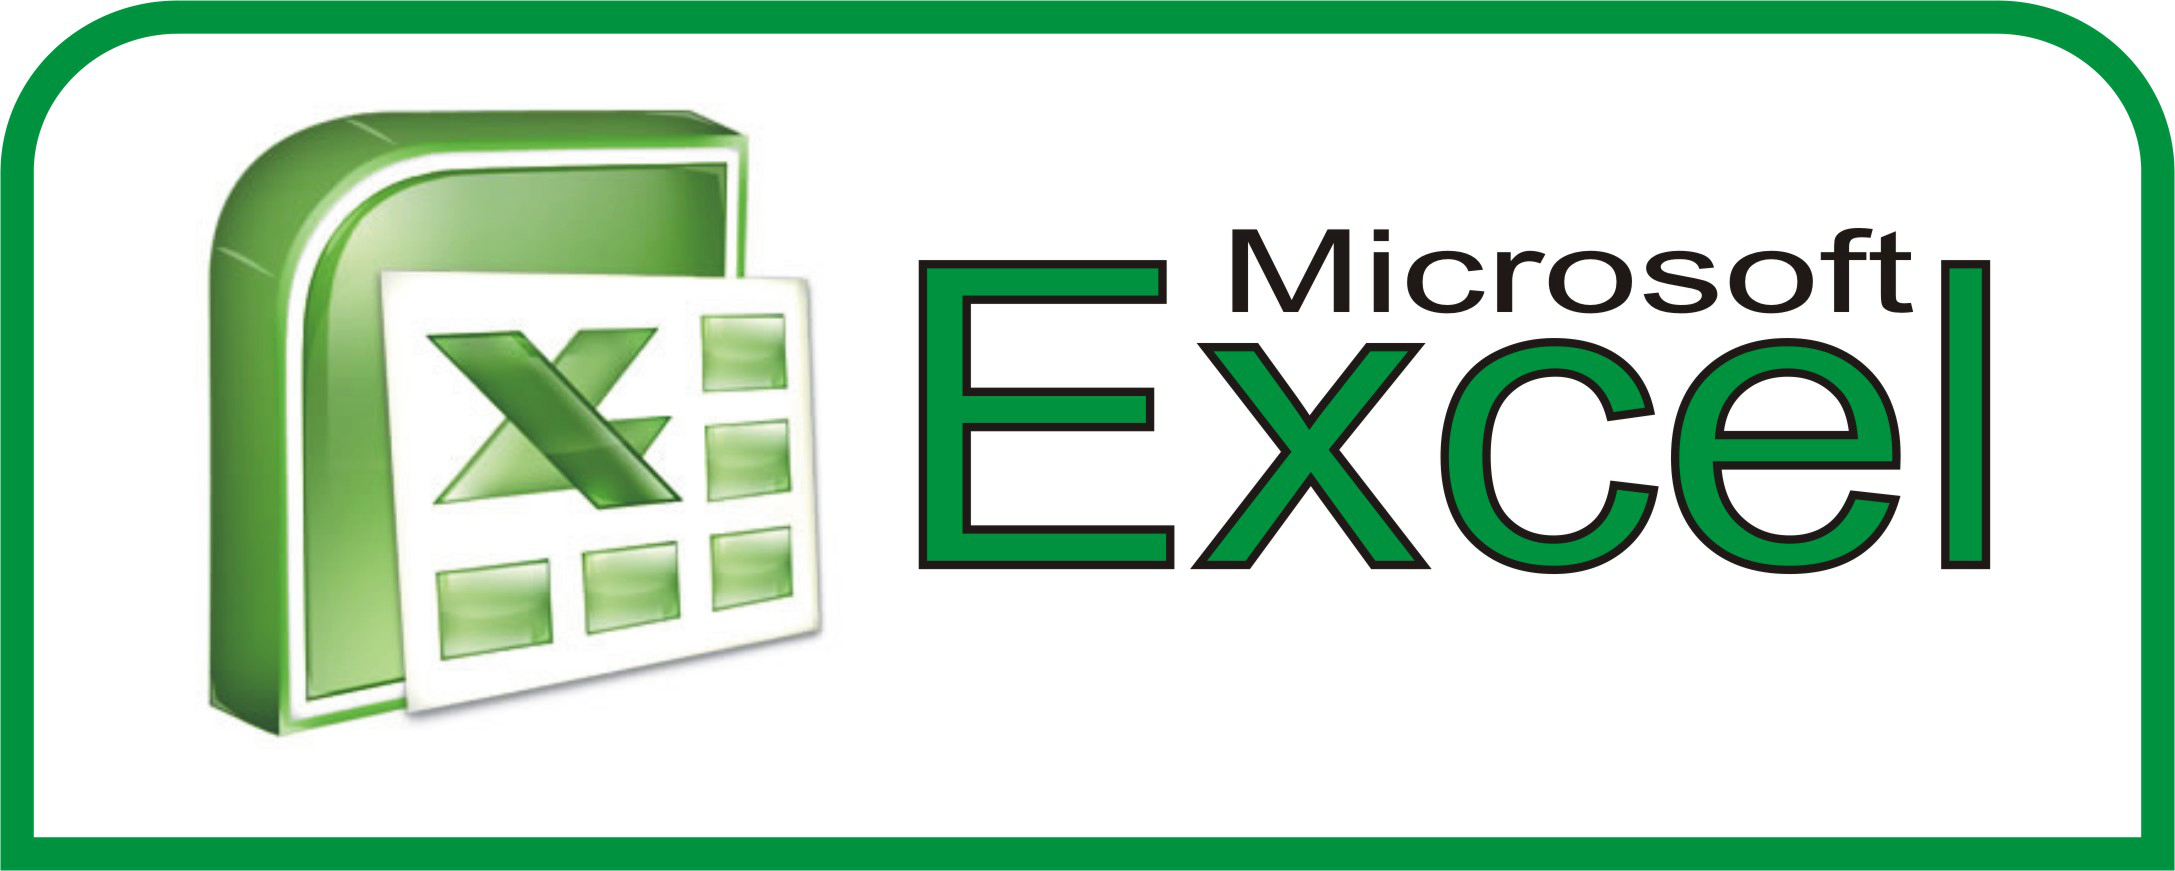 Ediblewildsus  Gorgeous  Excel Shortcuts You Probably Didnt Know About  Techdissected With Interesting Sortino Ratio Excel Besides Excel Spreadsheet For Bills Furthermore Open A Xml File In Excel With Beauteous Creating A Chart In Excel  Also Inventory Excel Template Free Download In Addition Raci Excel Template And Time Series Forecasting Excel As Well As Vb Net Save Excel File Additionally Excel File Read Only From Techdissectedcom With Ediblewildsus  Interesting  Excel Shortcuts You Probably Didnt Know About  Techdissected With Beauteous Sortino Ratio Excel Besides Excel Spreadsheet For Bills Furthermore Open A Xml File In Excel And Gorgeous Creating A Chart In Excel  Also Inventory Excel Template Free Download In Addition Raci Excel Template From Techdissectedcom